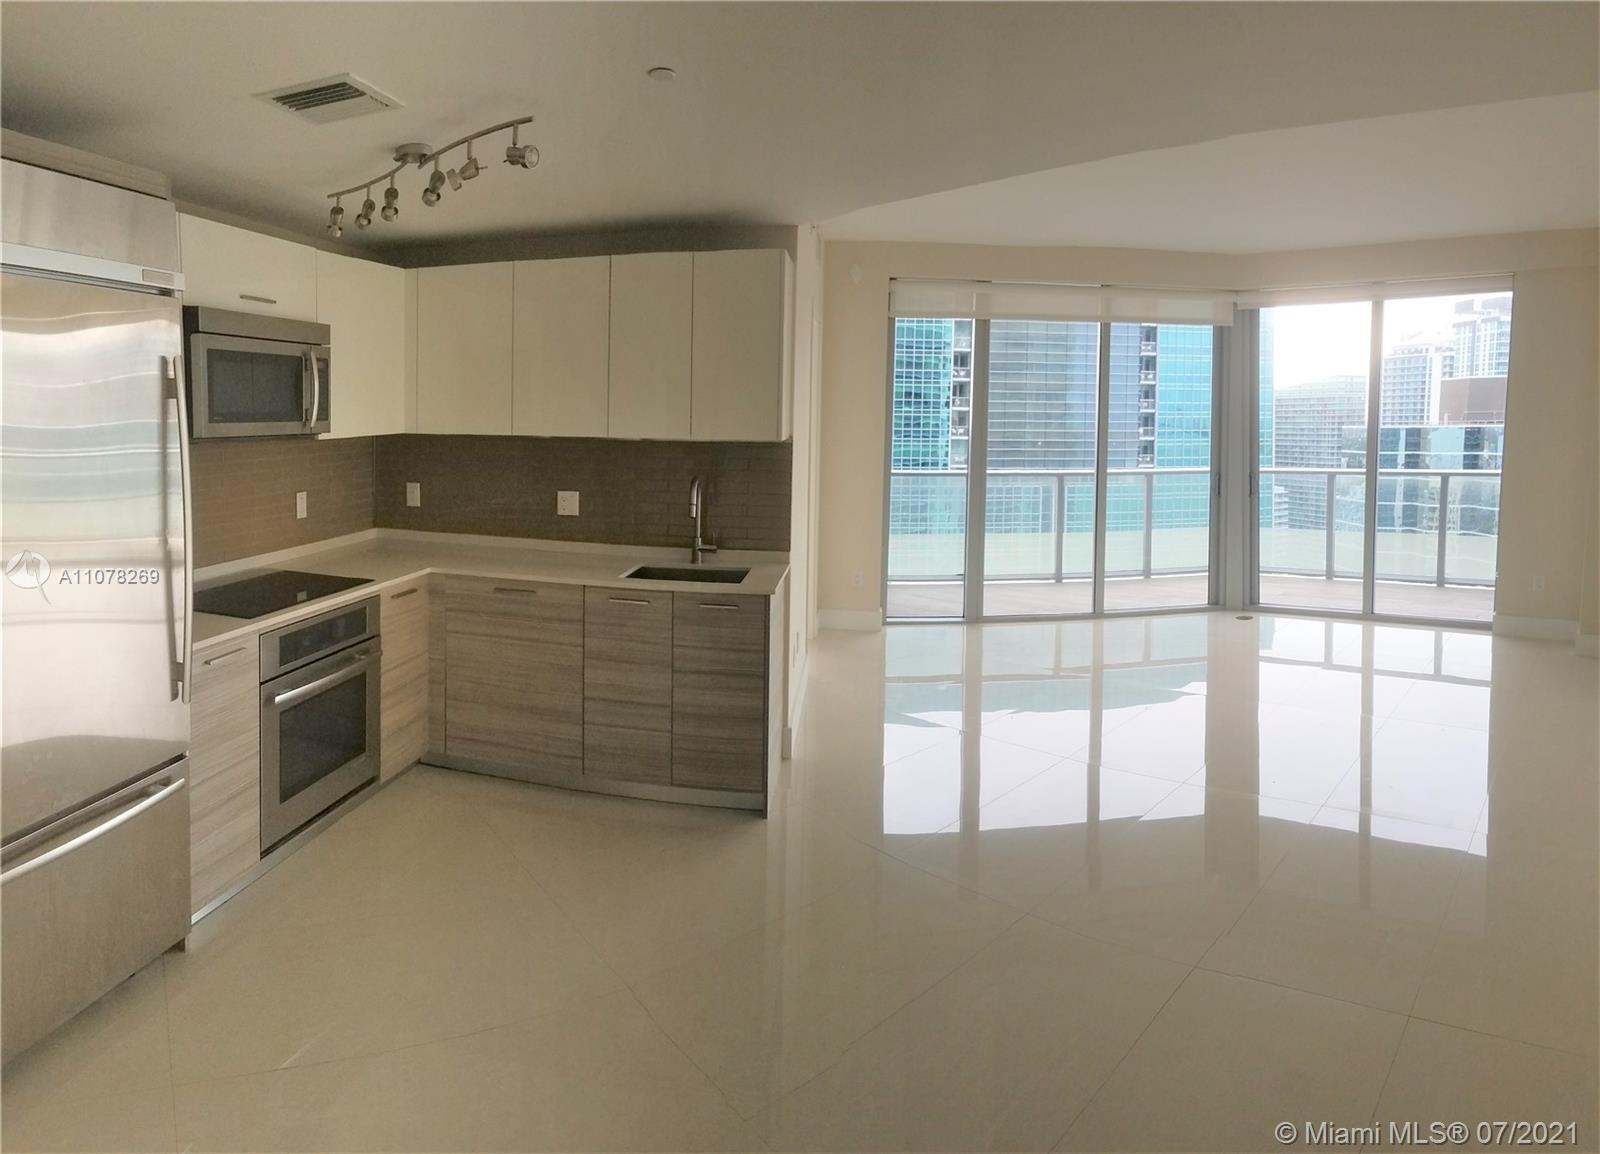 Beautiful Corner Unit in the heart of Brickell. This apartment features 2 Bedrooms and 2.5 Bath with